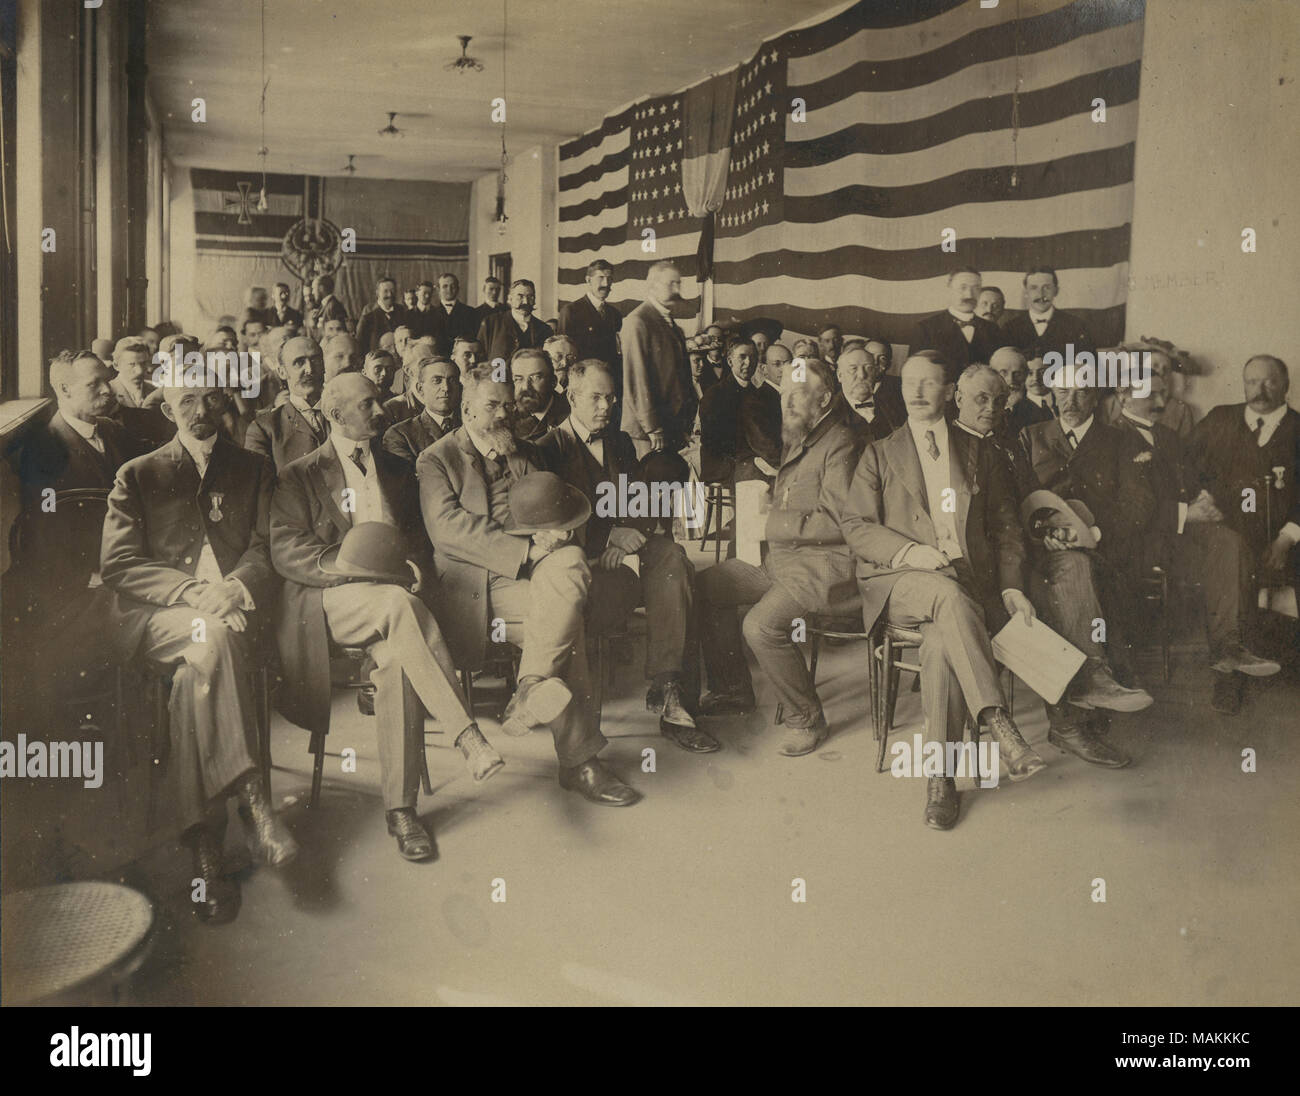 Title: 'Section on Methodology of Sciences.' International Congress of Arts and Sciences meeting in the Hall of Congresses at the 1904 World's Fair.  . 1904. Jessie Tarbox Beals - Stock Image